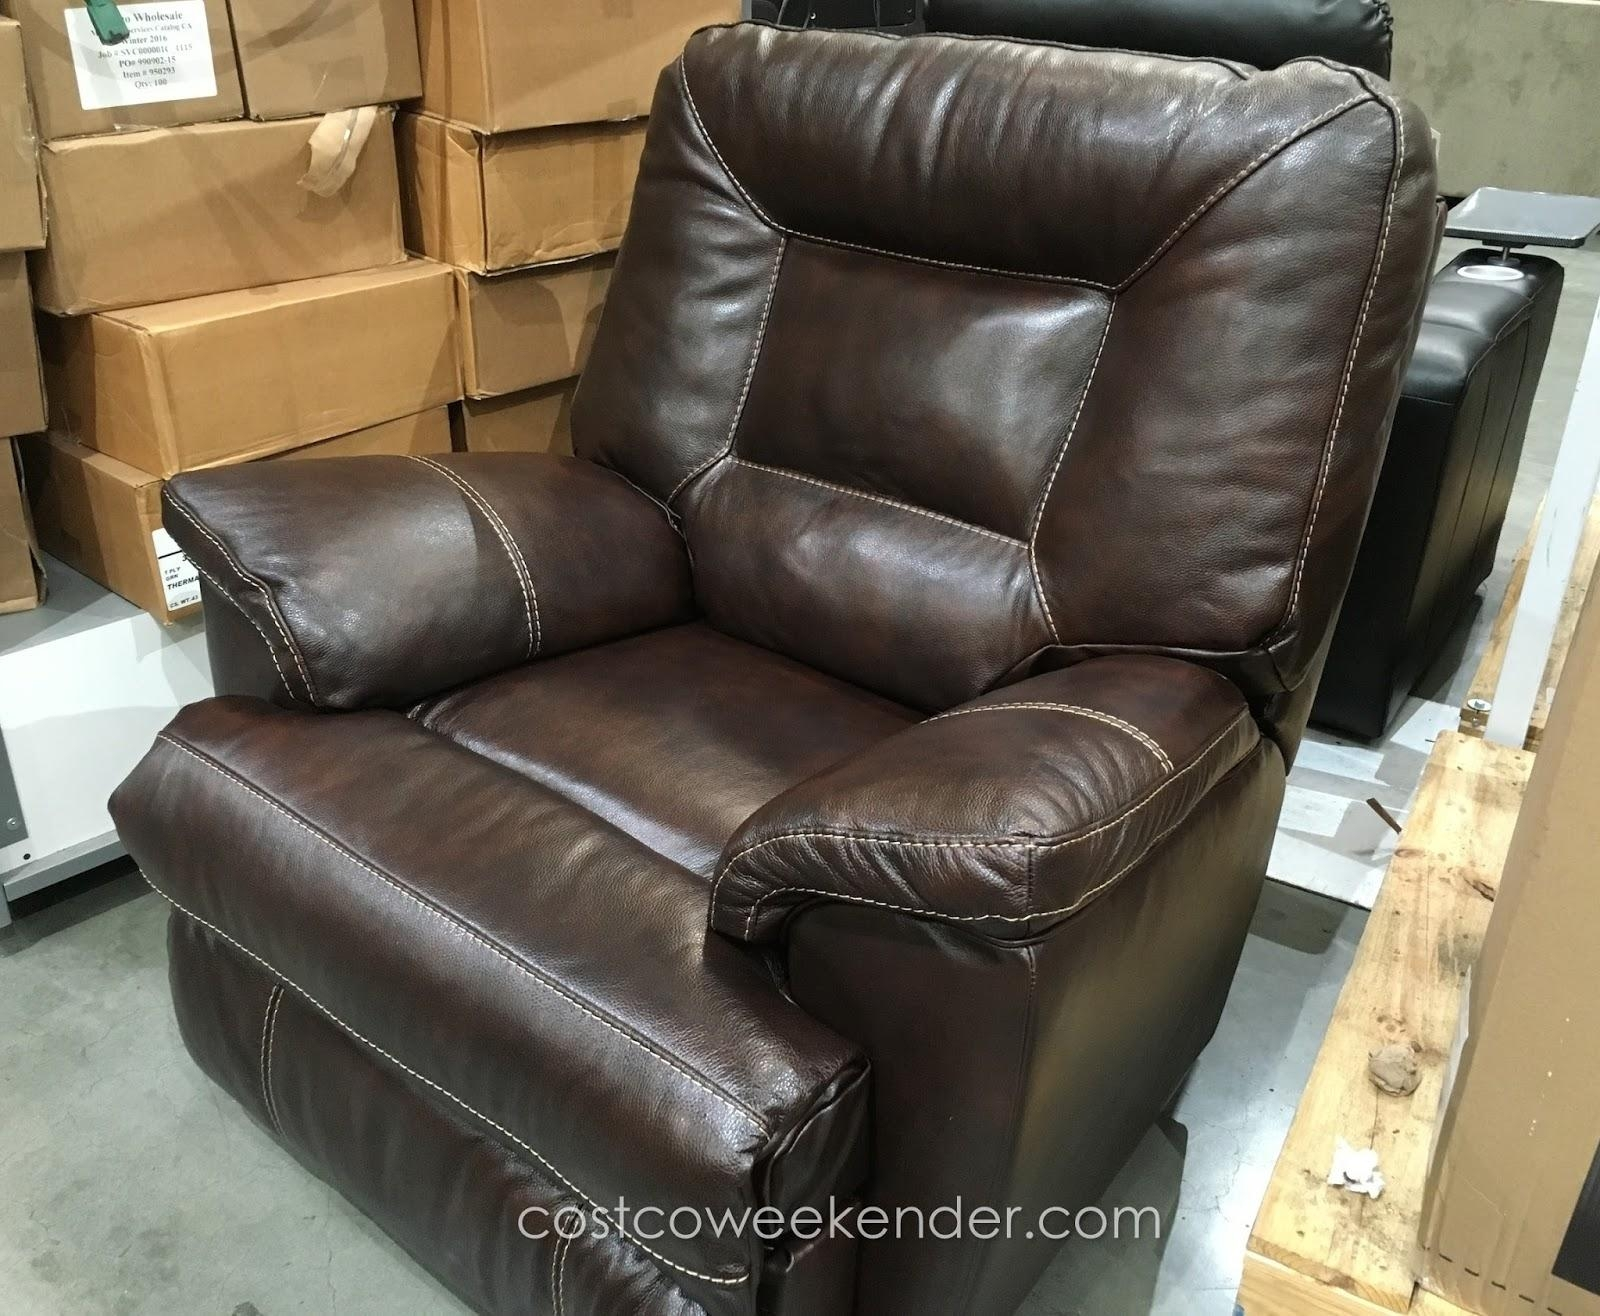 Furniture & Sofa: Enjoy Your Holiday With Costco Home Theater Inside Berkline Sofa Recliner (View 5 of 20)